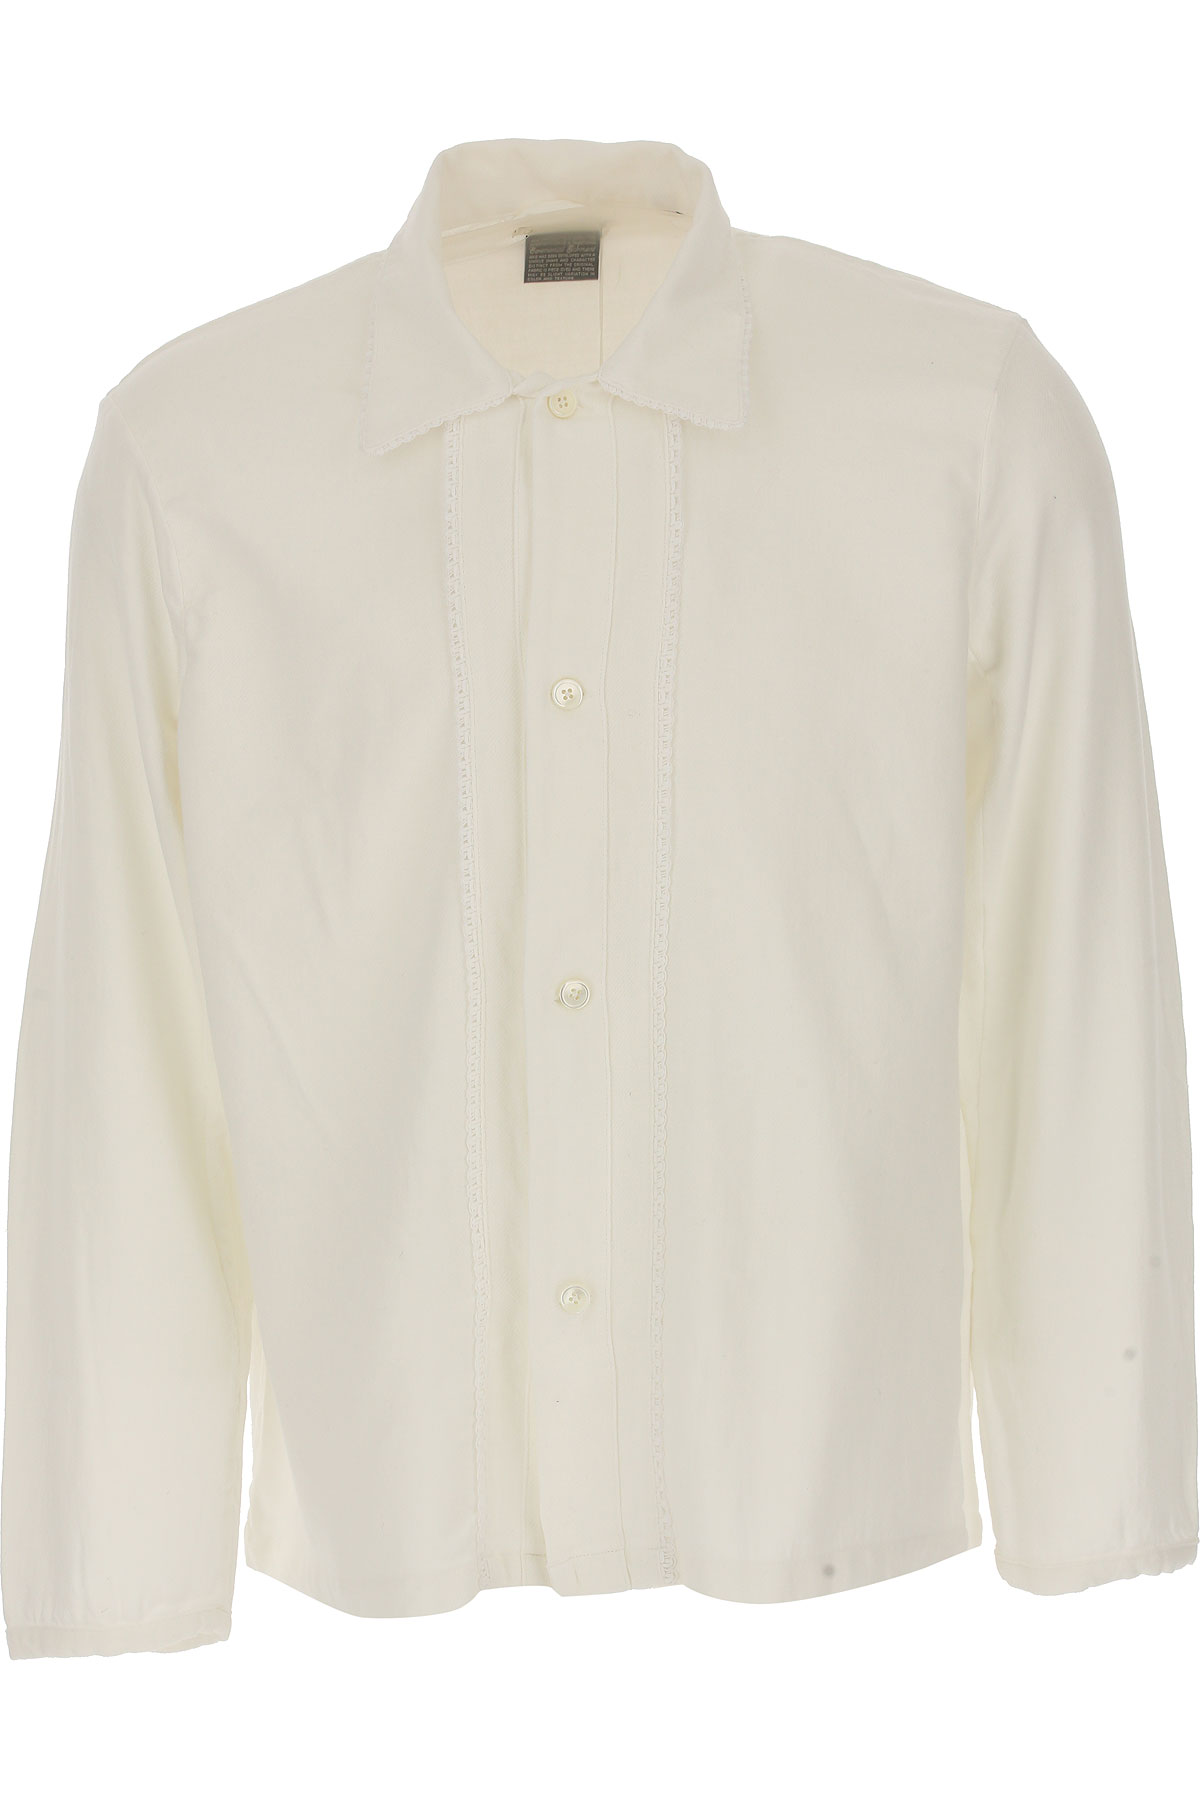 Image of Our Legacy Shirt for Men, White, Cotton, 2017, 32 34